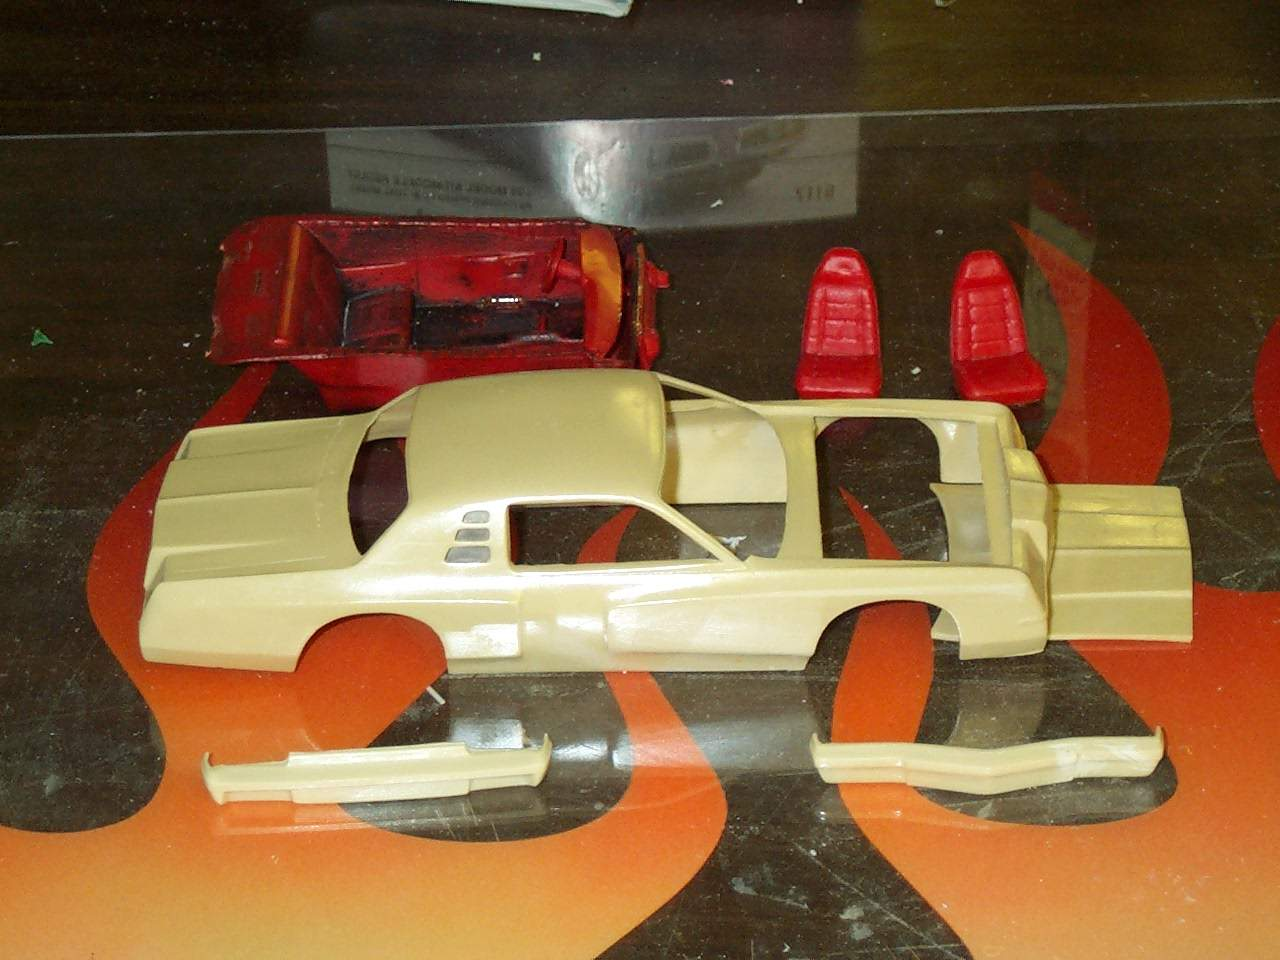 Starting 79 Dodge Magnum street car conversion. I am starting with a JNJ resin race car body that seems to be based on the old MPC 71-77 Charger / Road Runner / Monaco, the real Magnum shared a lot of structure with those cars.